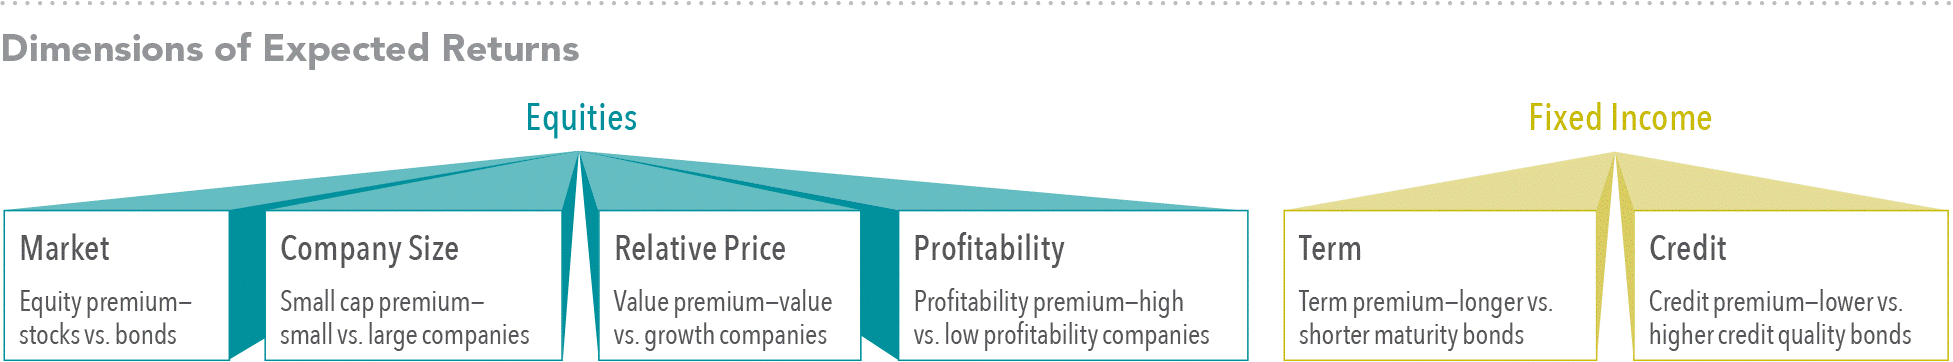 Relative price is measured by the price-to-book ratio; value stocks are those with lower price-to-book ratios. Profitability is a measure of current profitability based on information from individual companies' income statements.